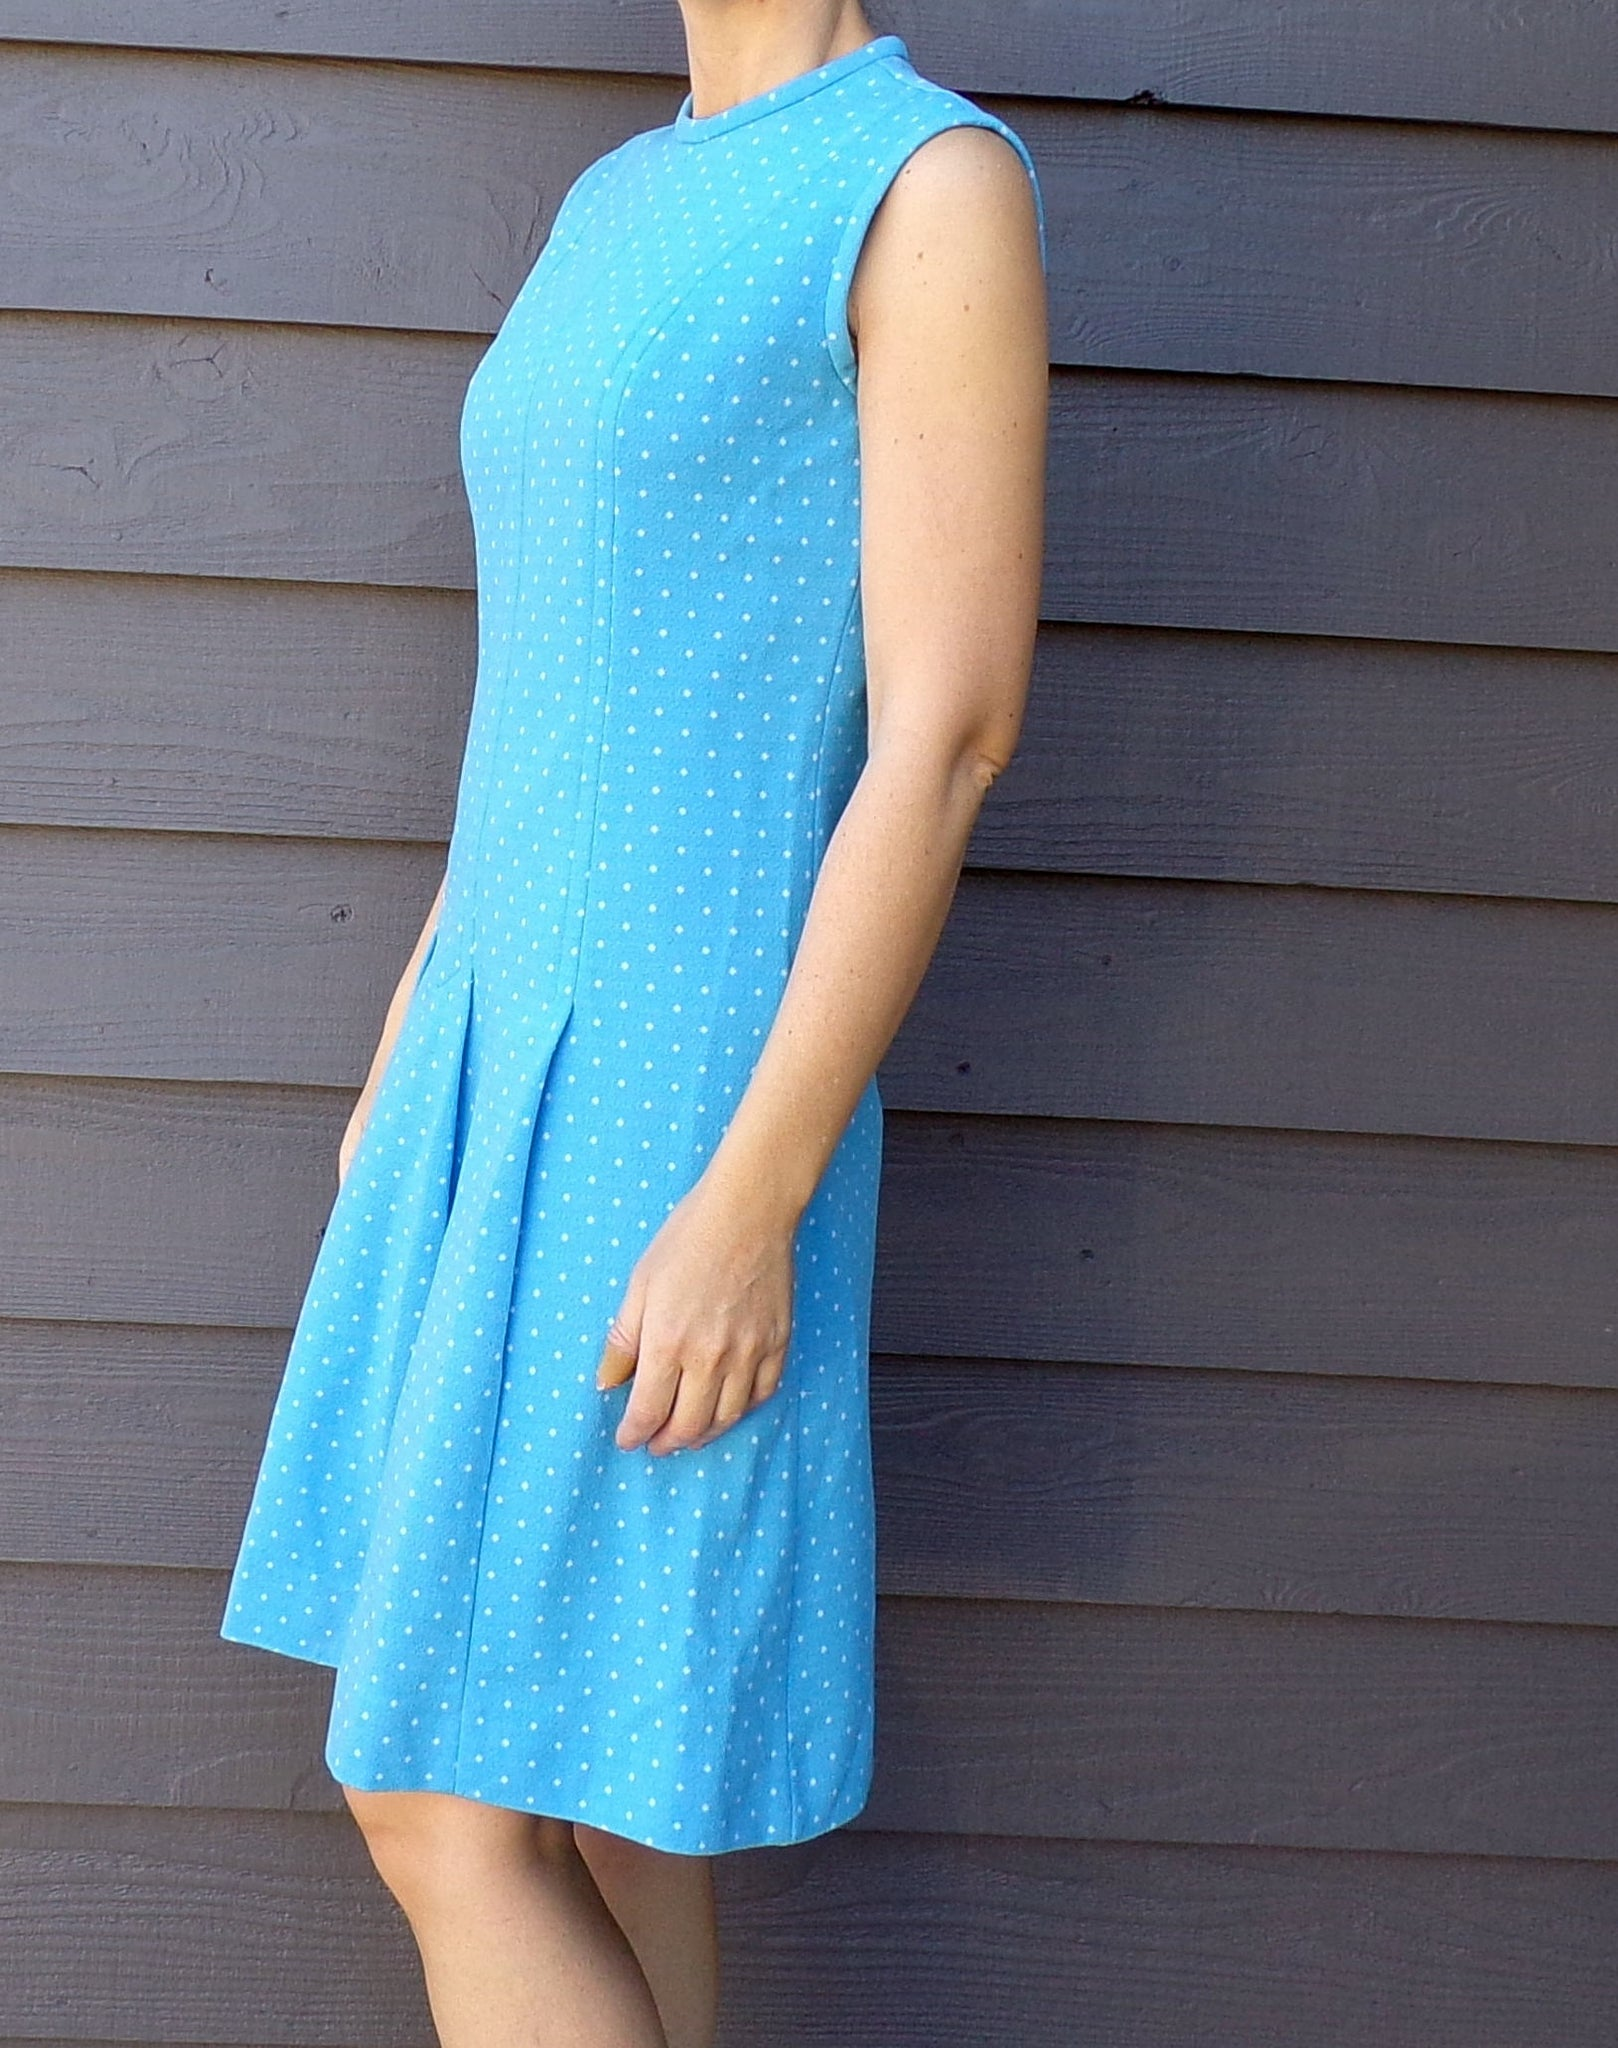 AQUA BLUE mod DRESS sleeveless polka dot 60's S M (G1)